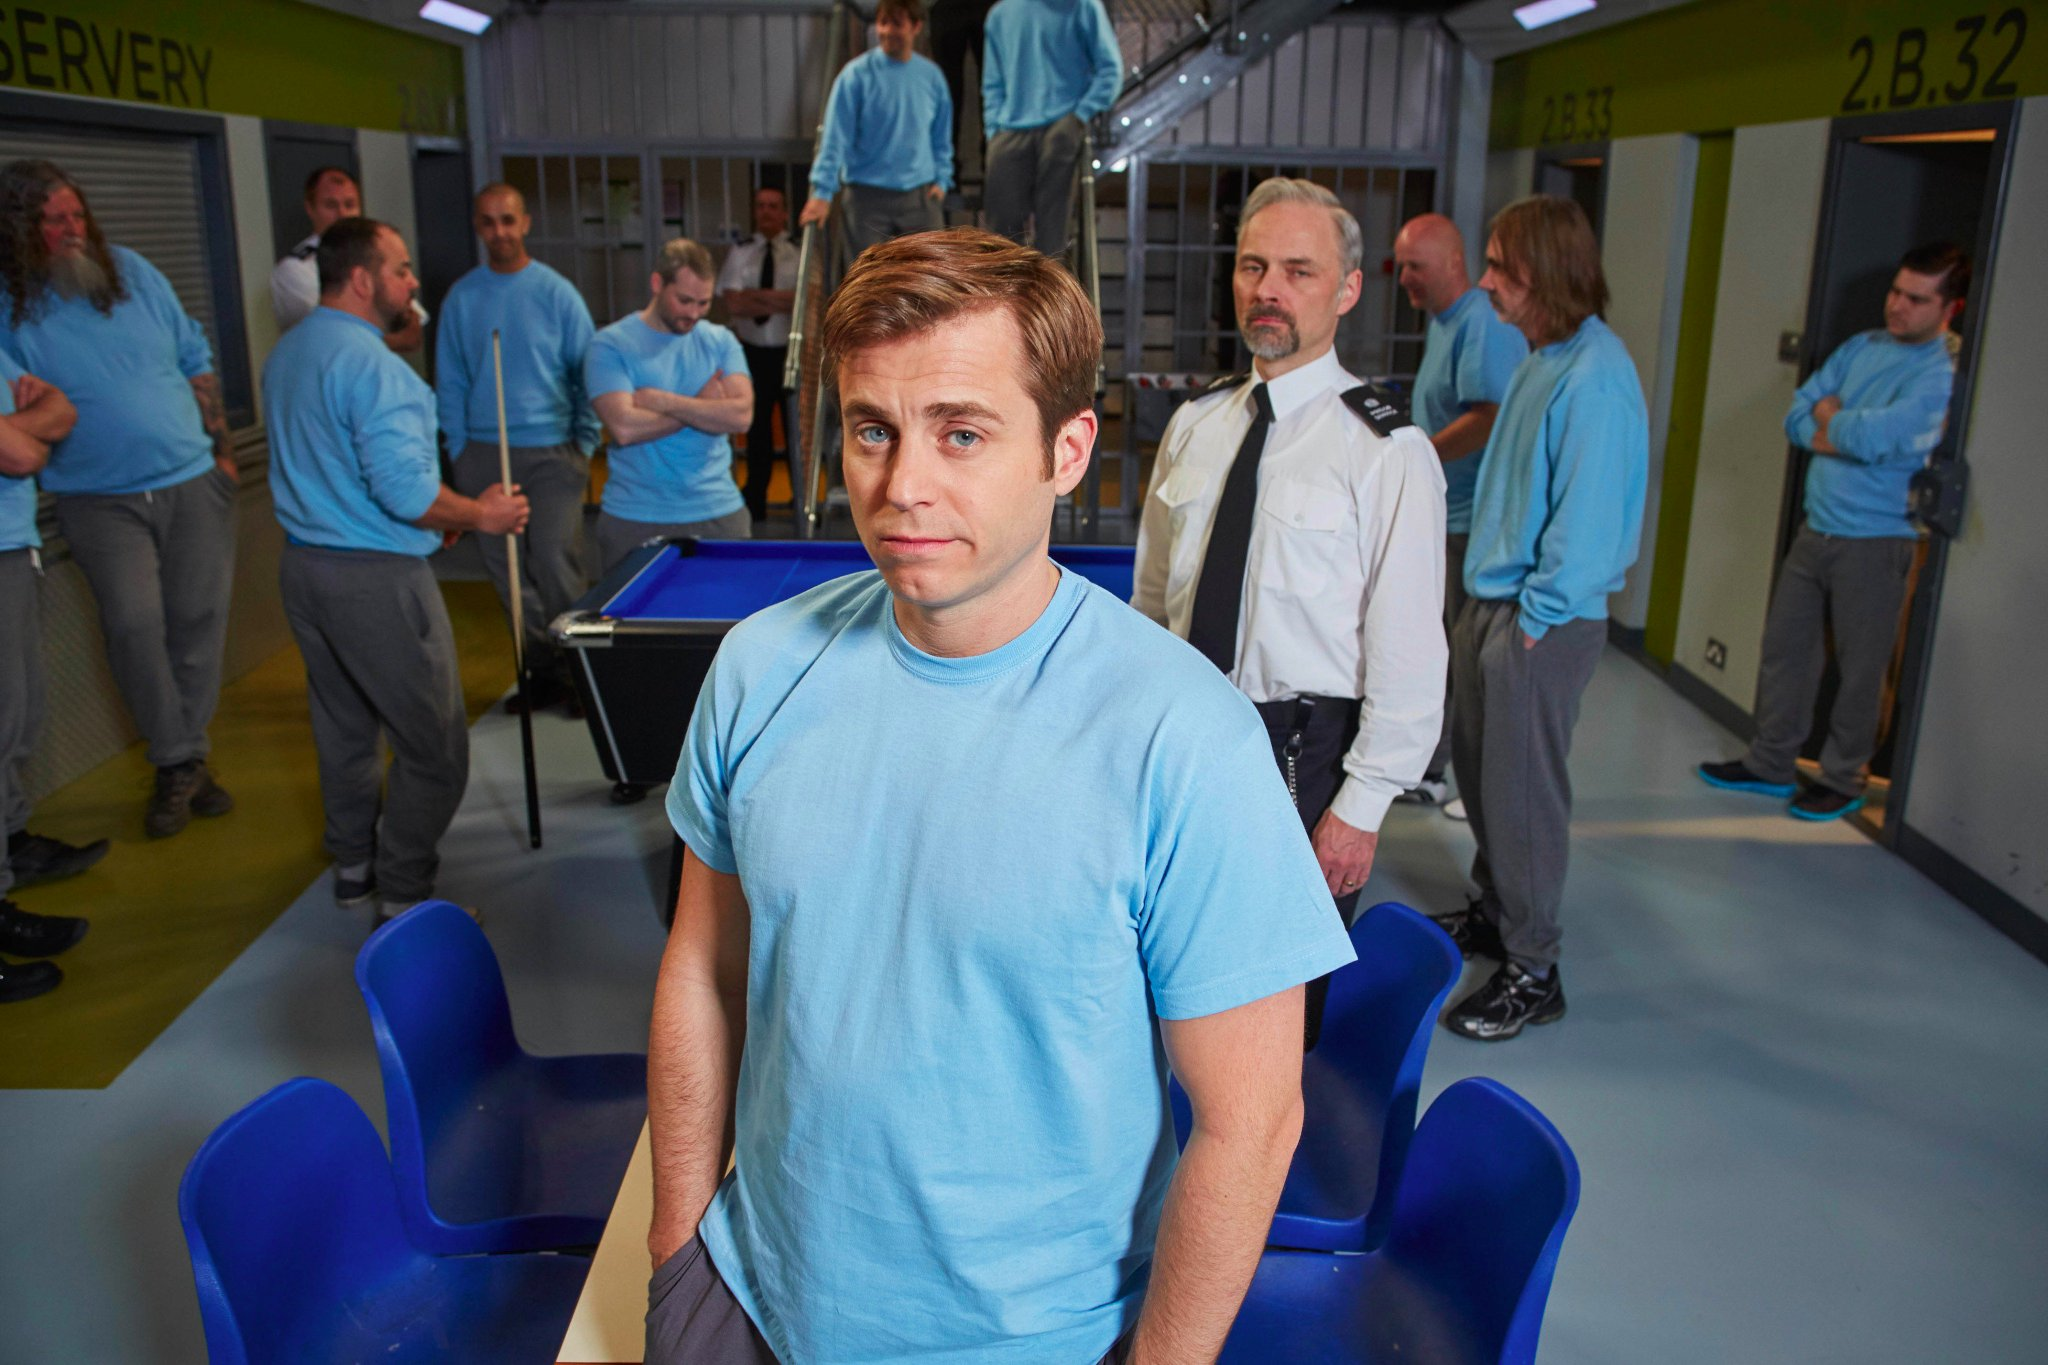 Enjoyed #AYBS? Stay tuned to @BBCOne. @IAMKEVBISH stars as Fletch's grandson, banged up for cyber fraud. #Porridge. https://t.co/o2Uk8D3WH9